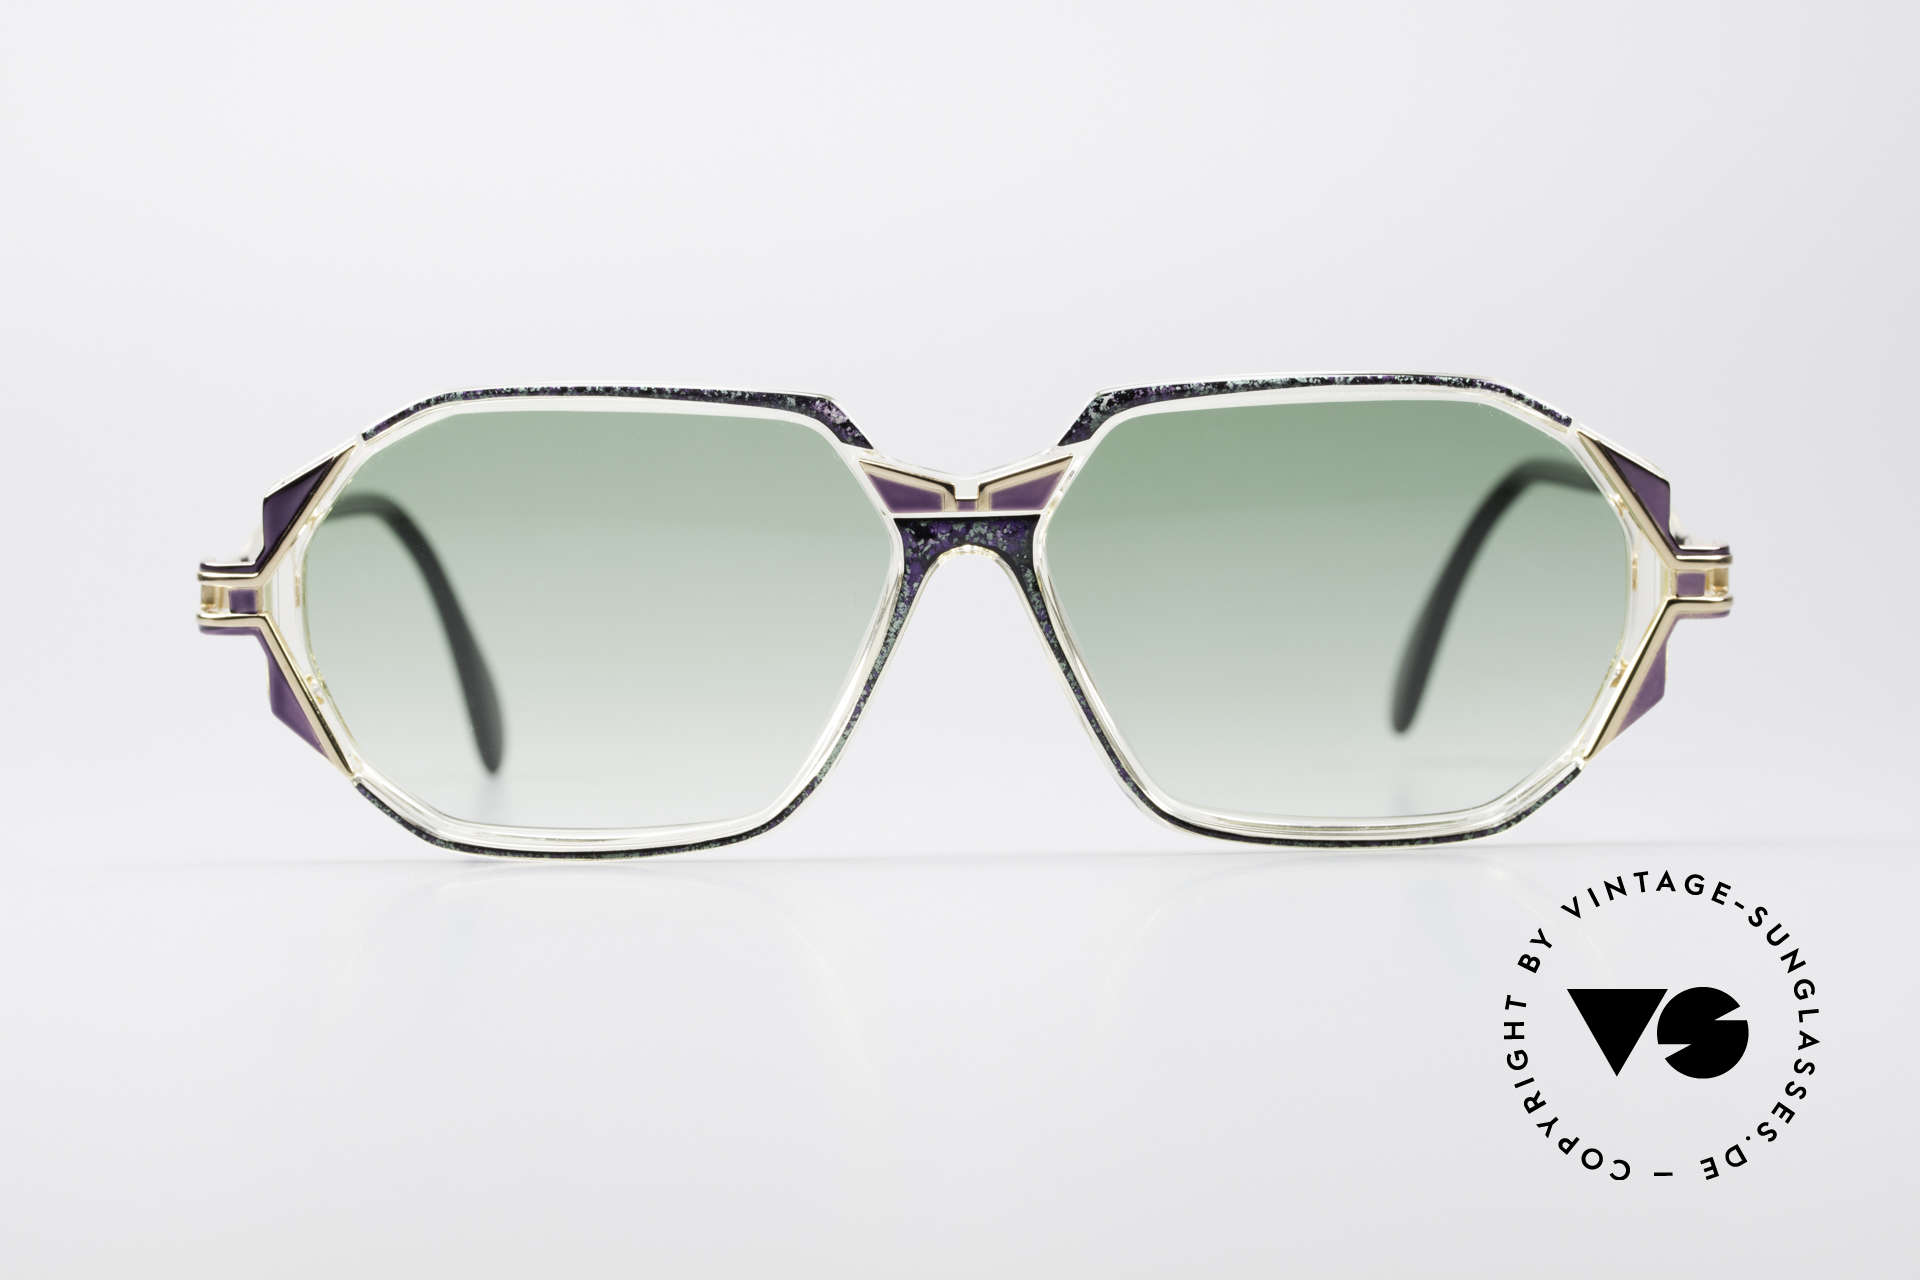 Cazal 361 Original Ladies 90s Sunglasses, exciting design on the hinges of the arms; truly vintage, Made for Women